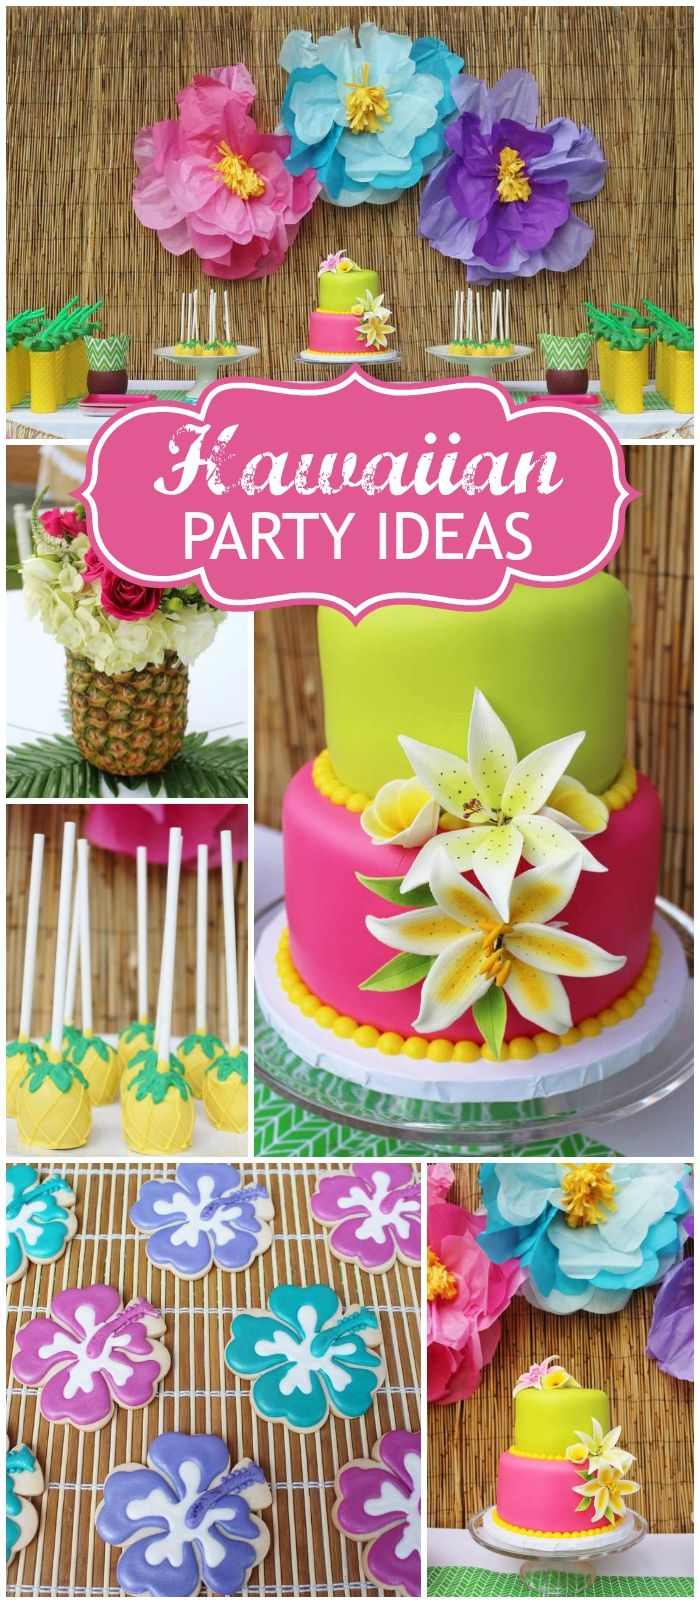 review      Julieta     s Hawaiian Parties Hawaiian Hawaii Luau    low Party Birthday Hawaiian   hyperdunk Ideas Party            nd Birthday and